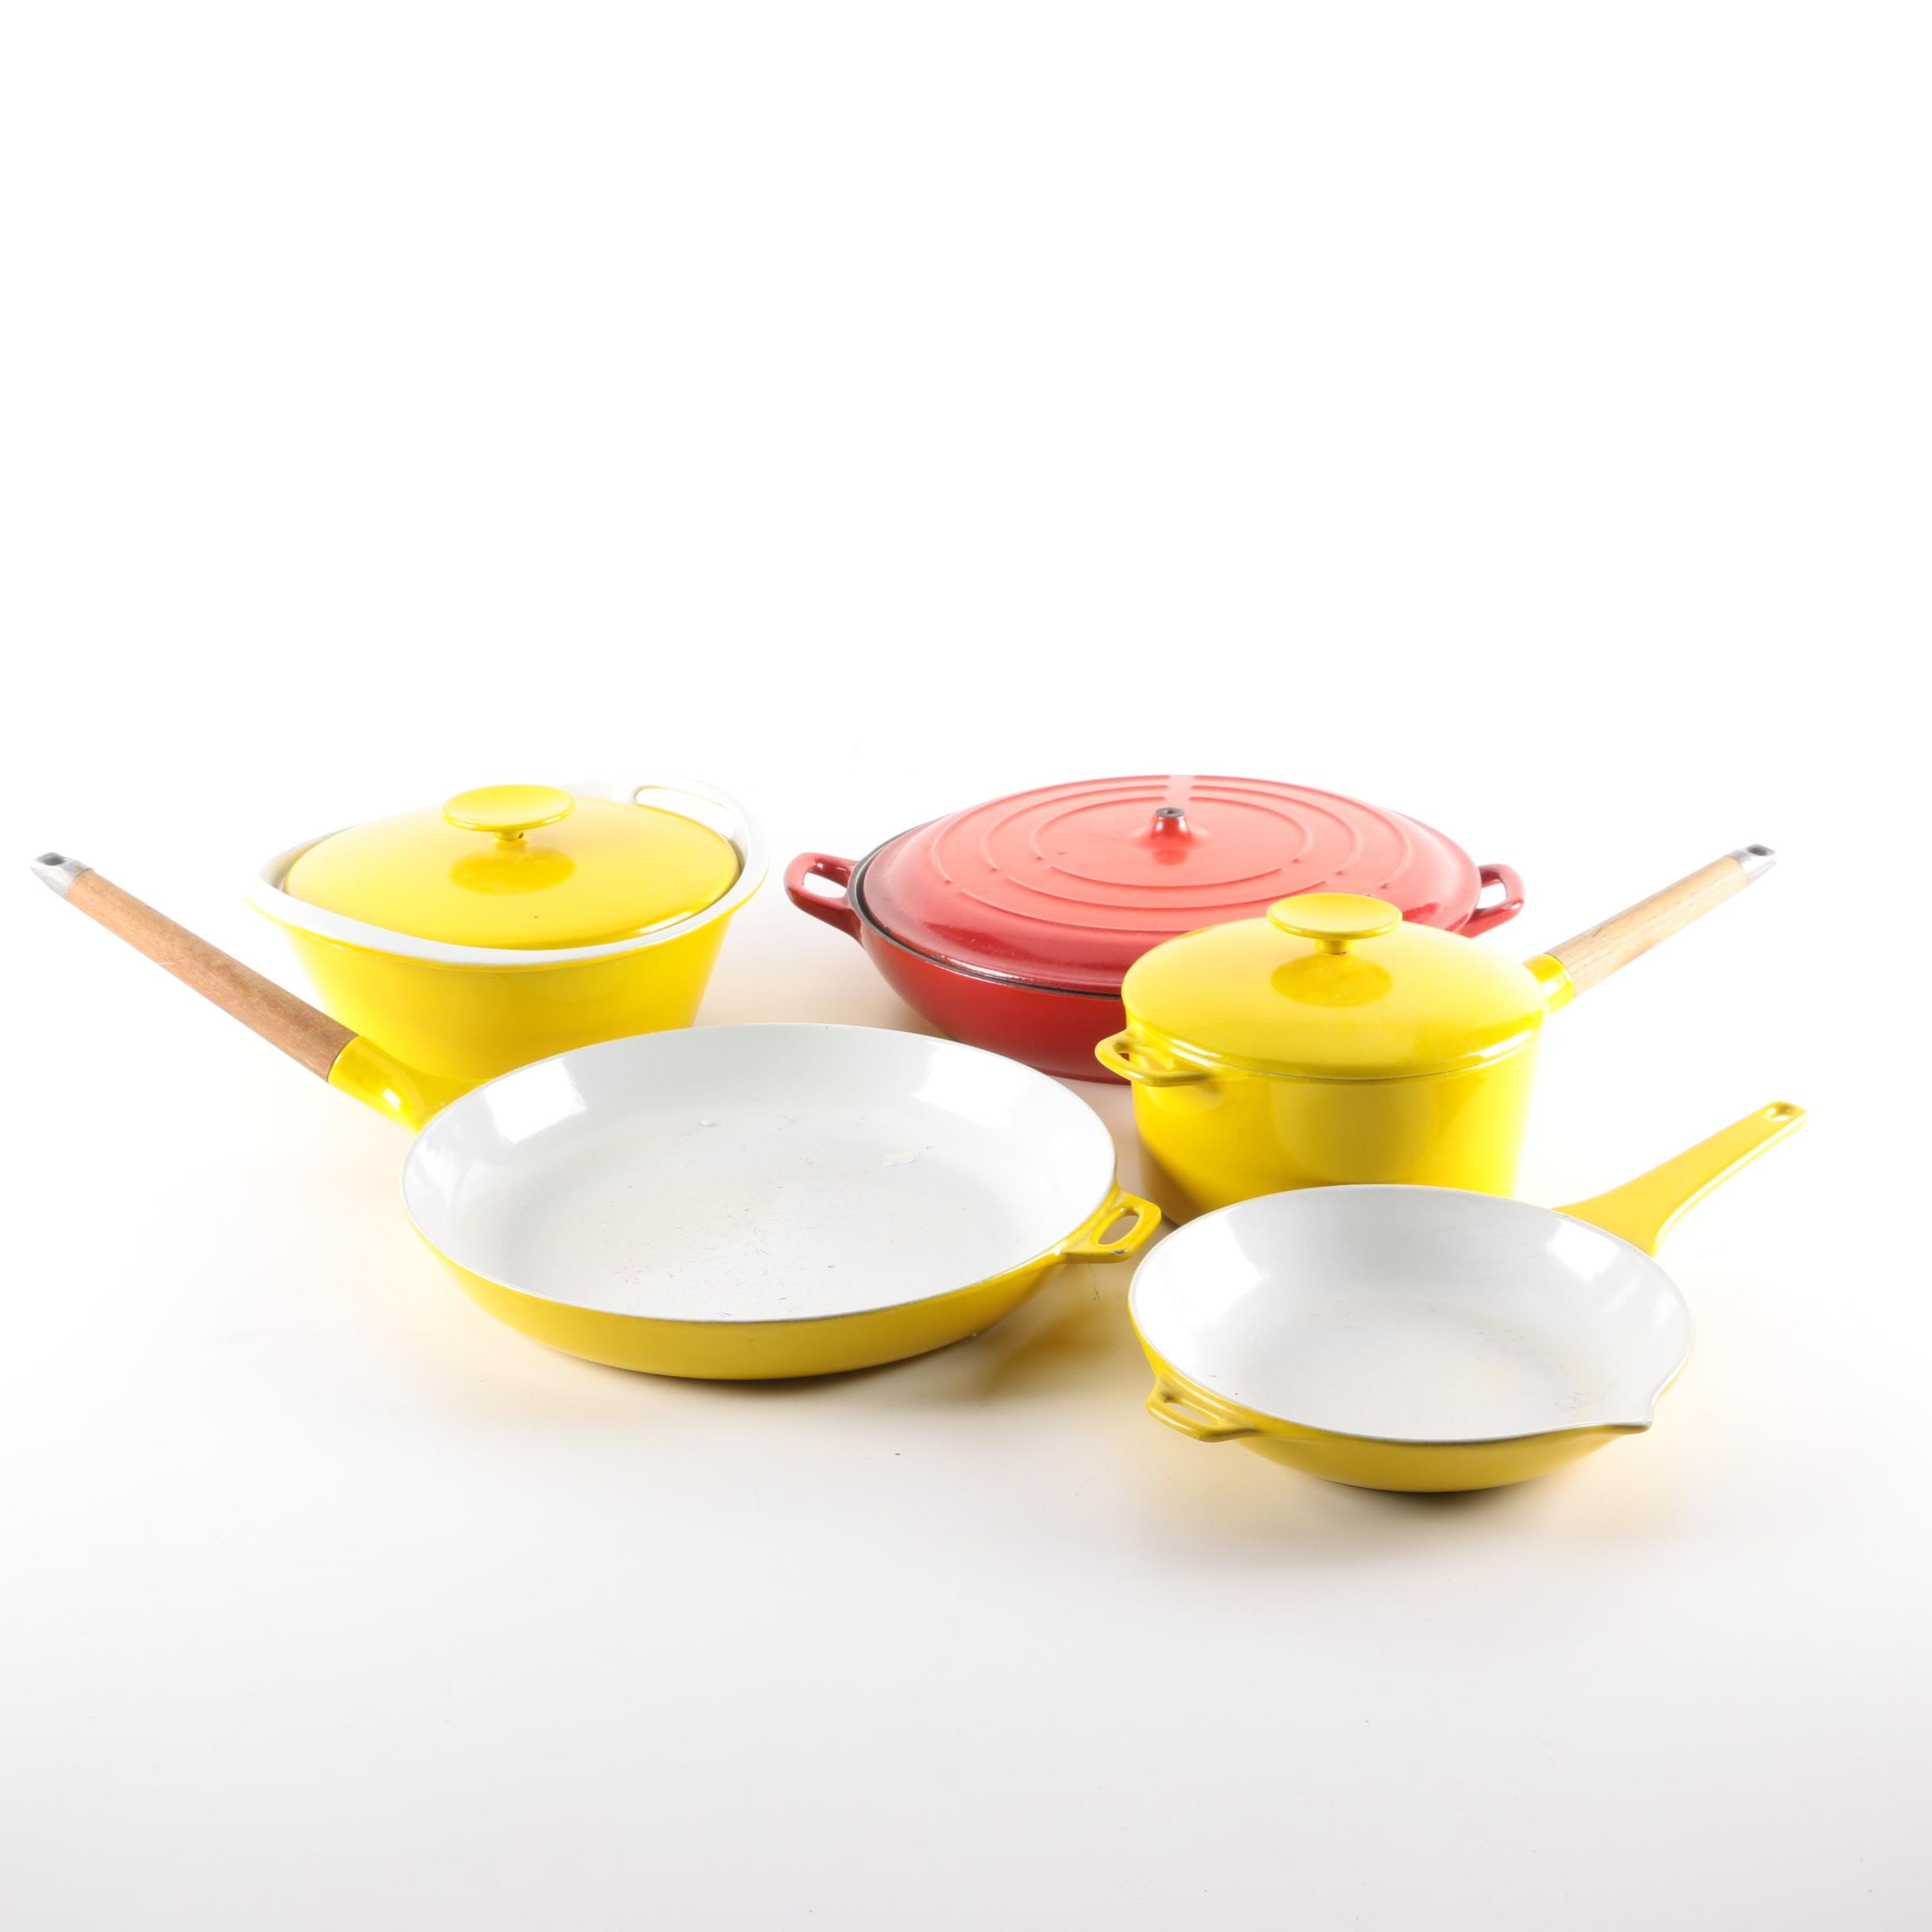 Enameled Cookware Featuring Technique